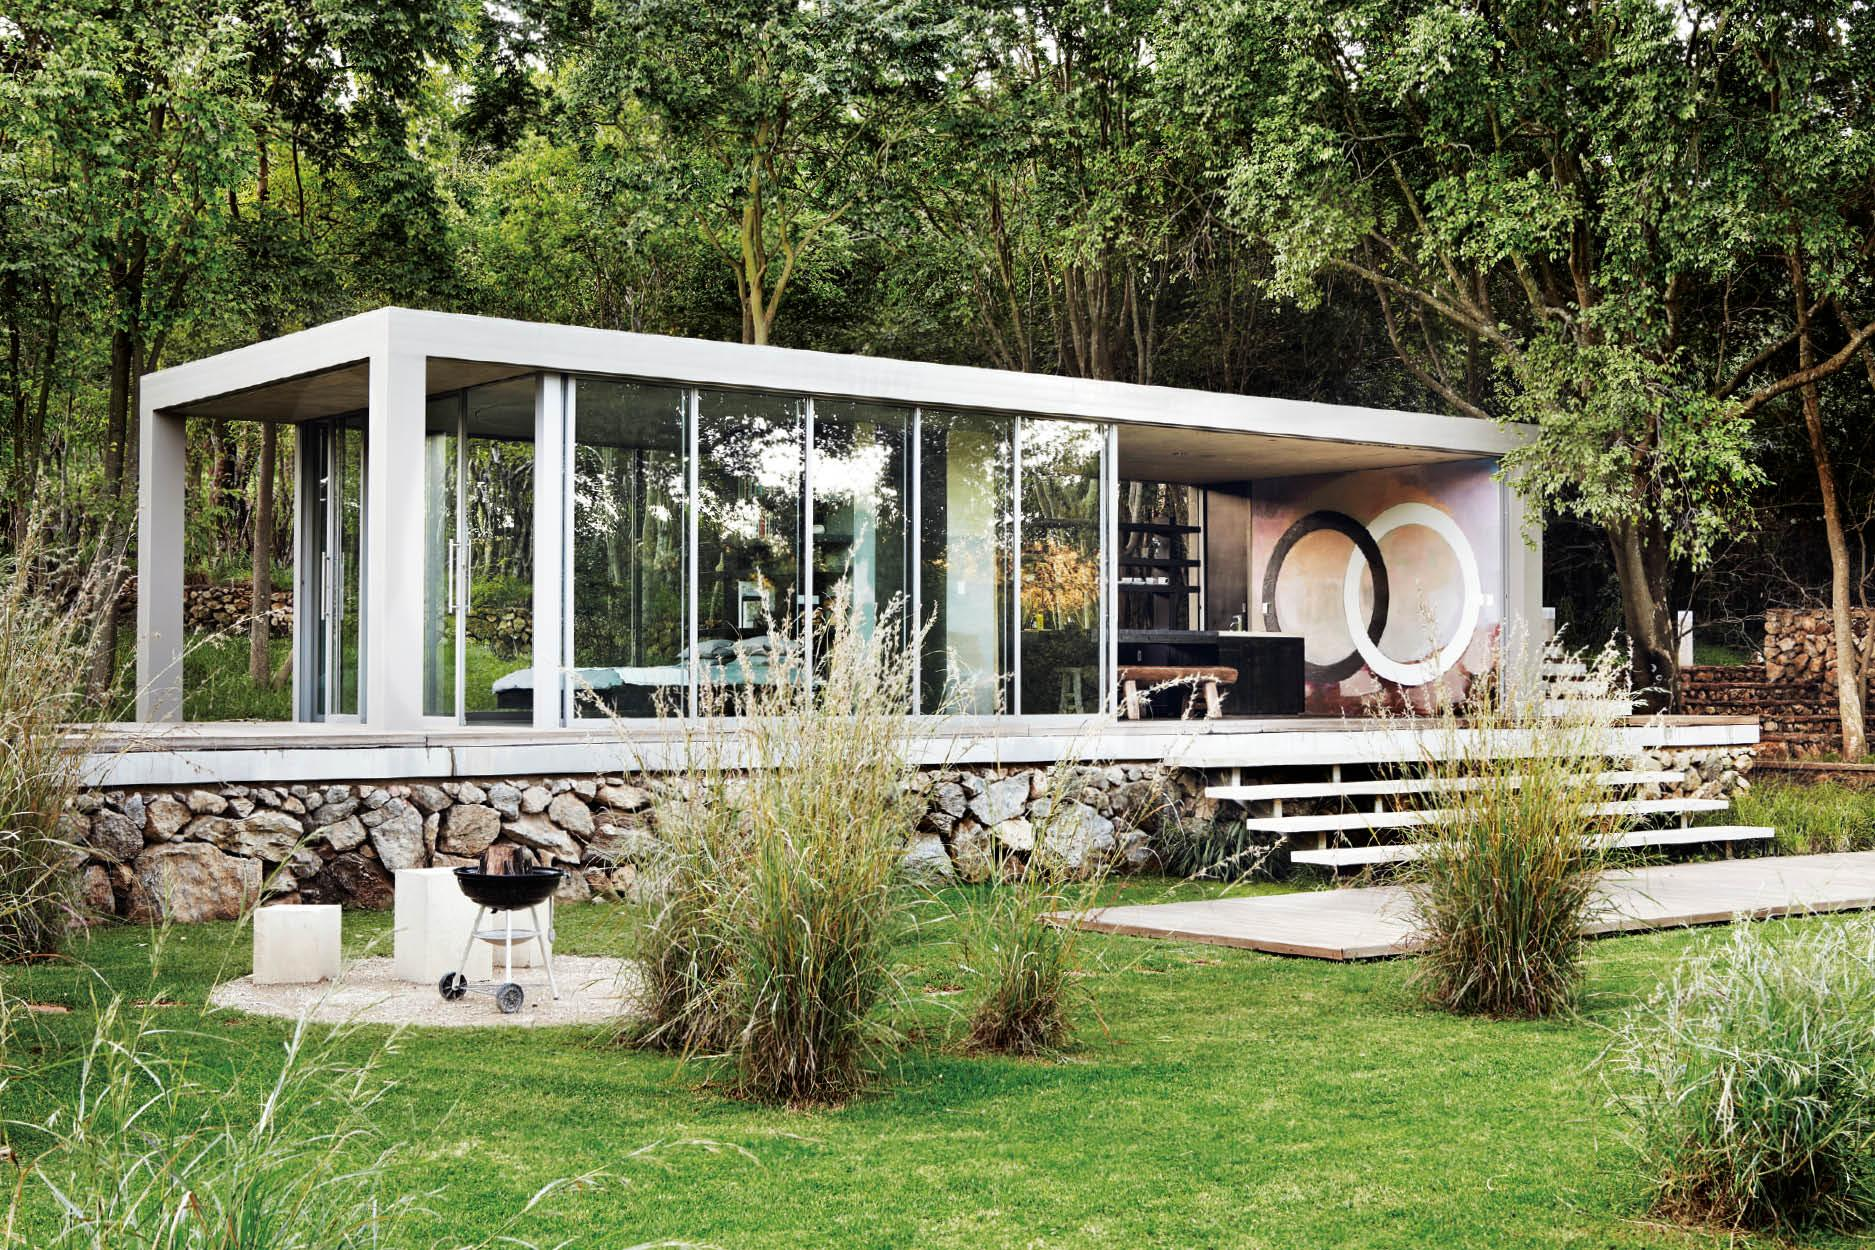 Inside a Modernist-inspired Glass Box Home in the Woods